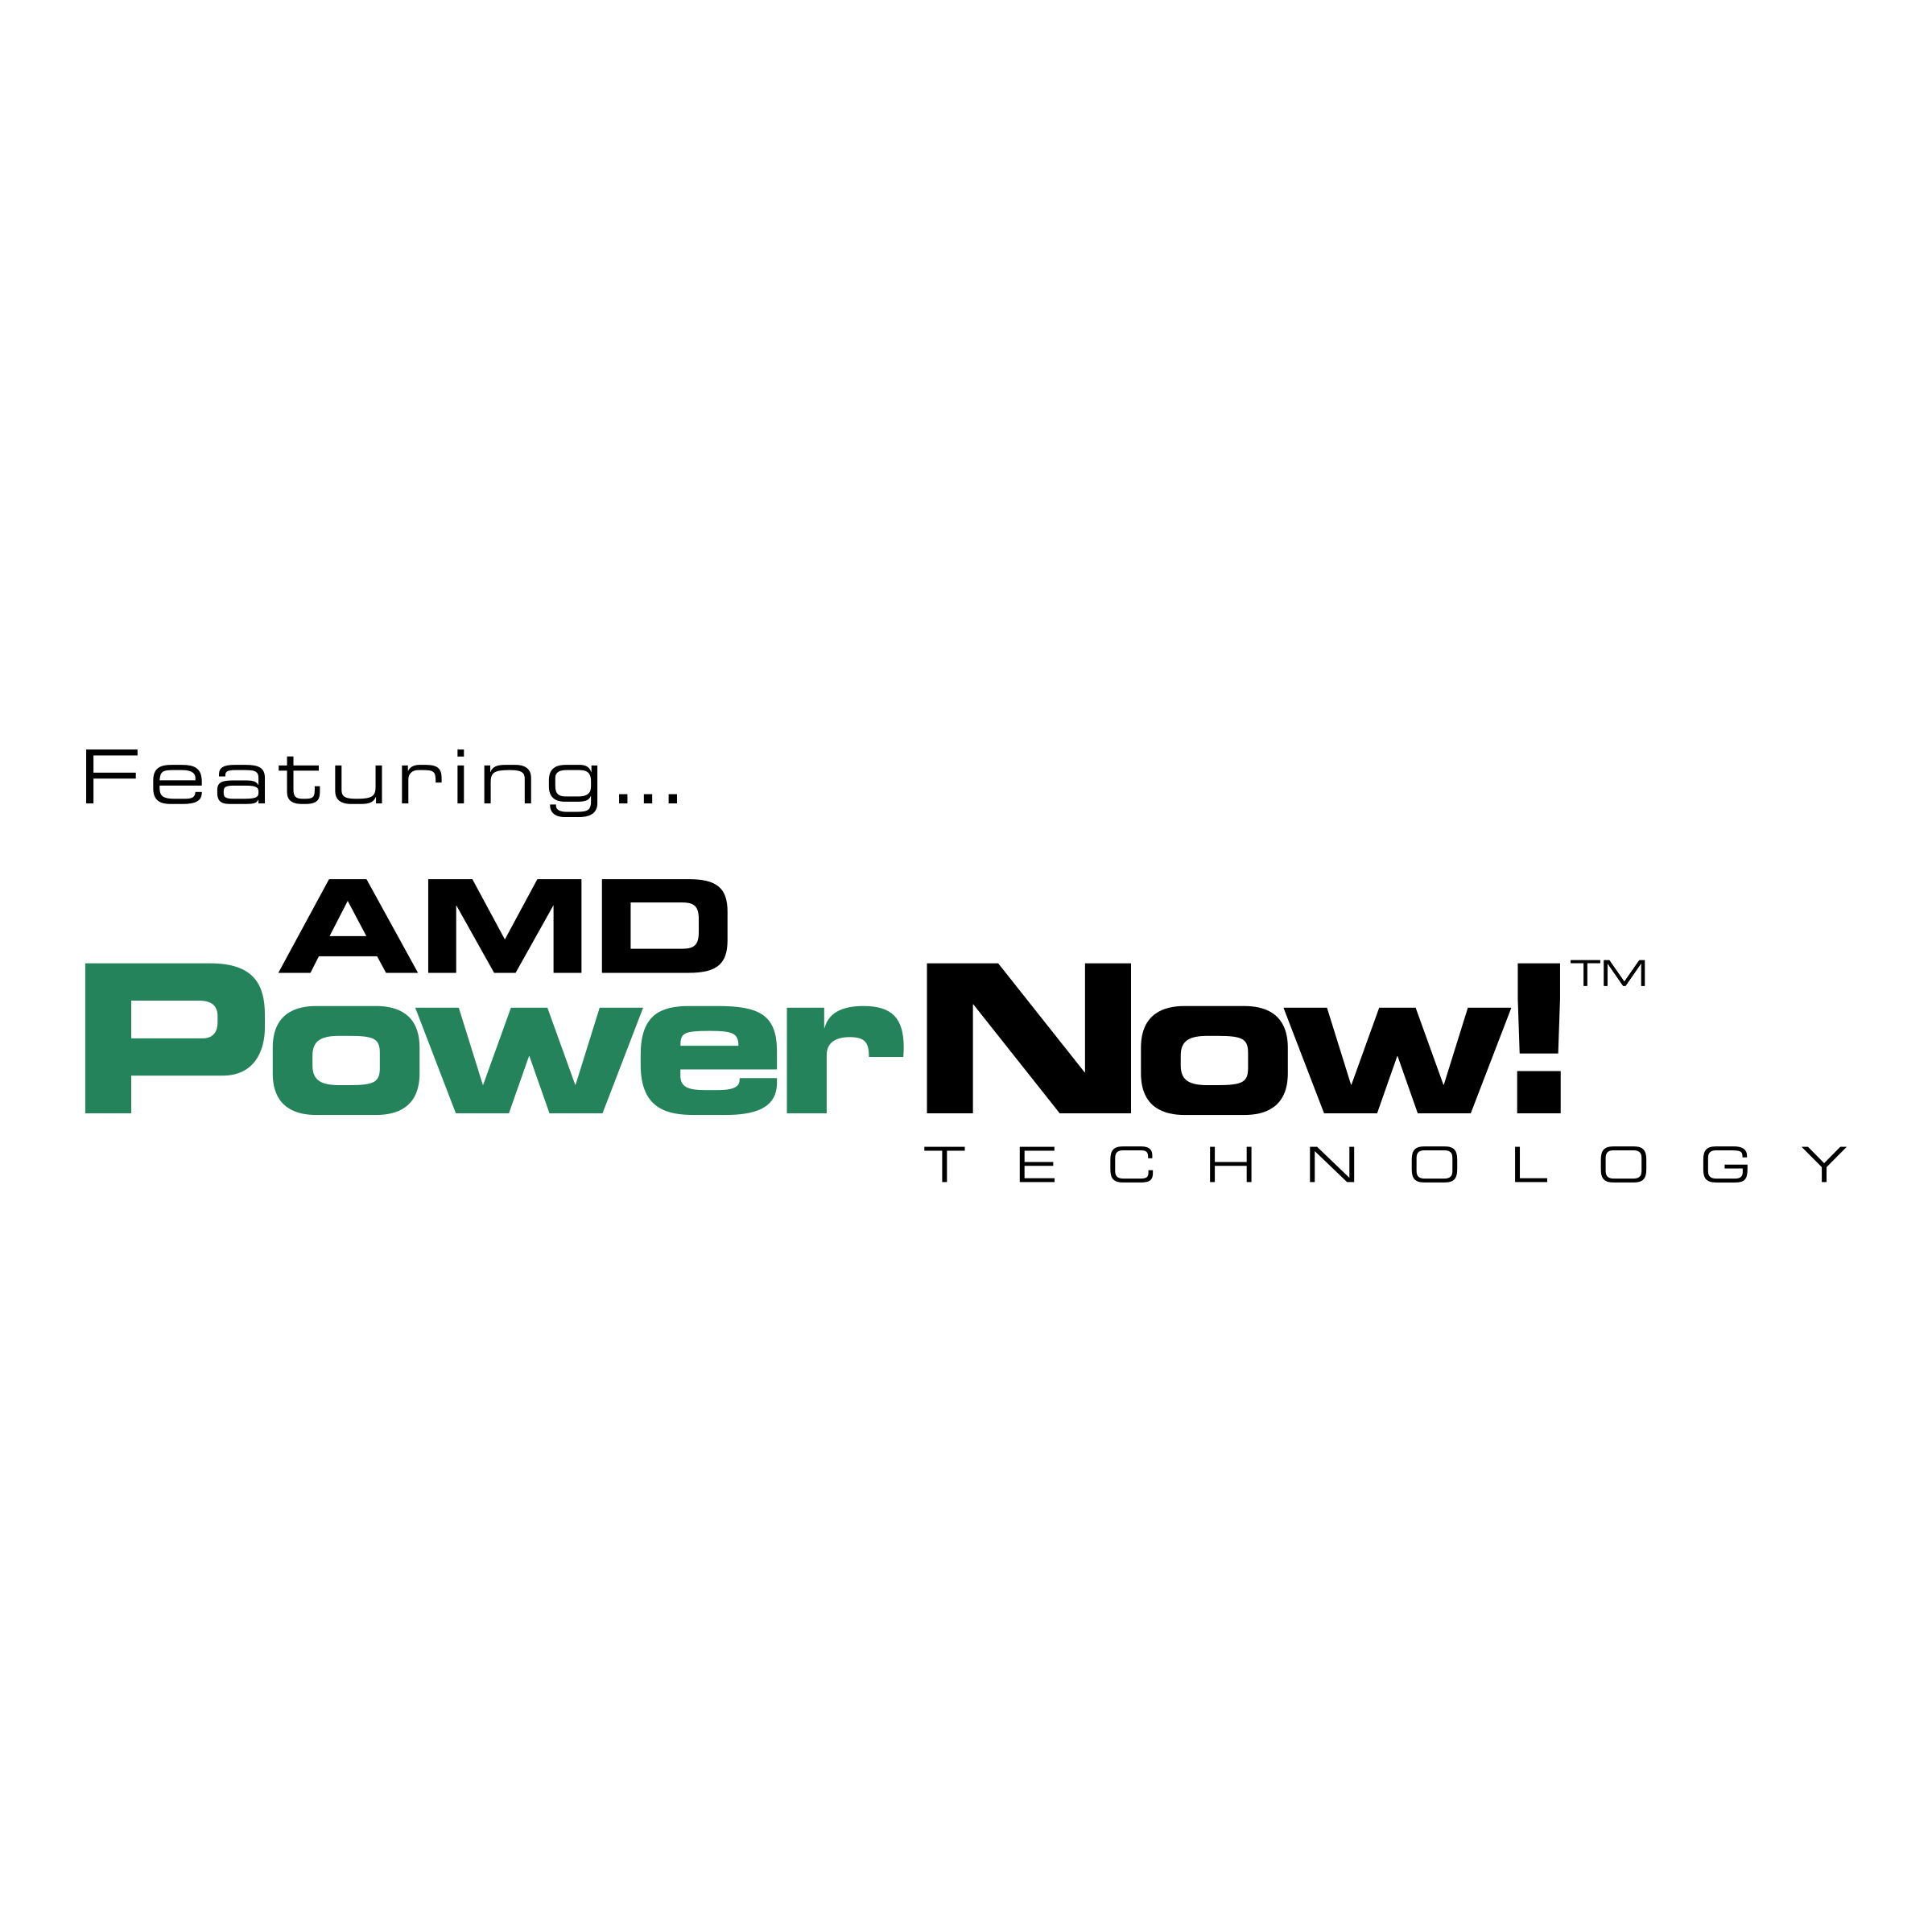 Amd Powernow Logo Png Transparent Svg Vector Freebie Supply